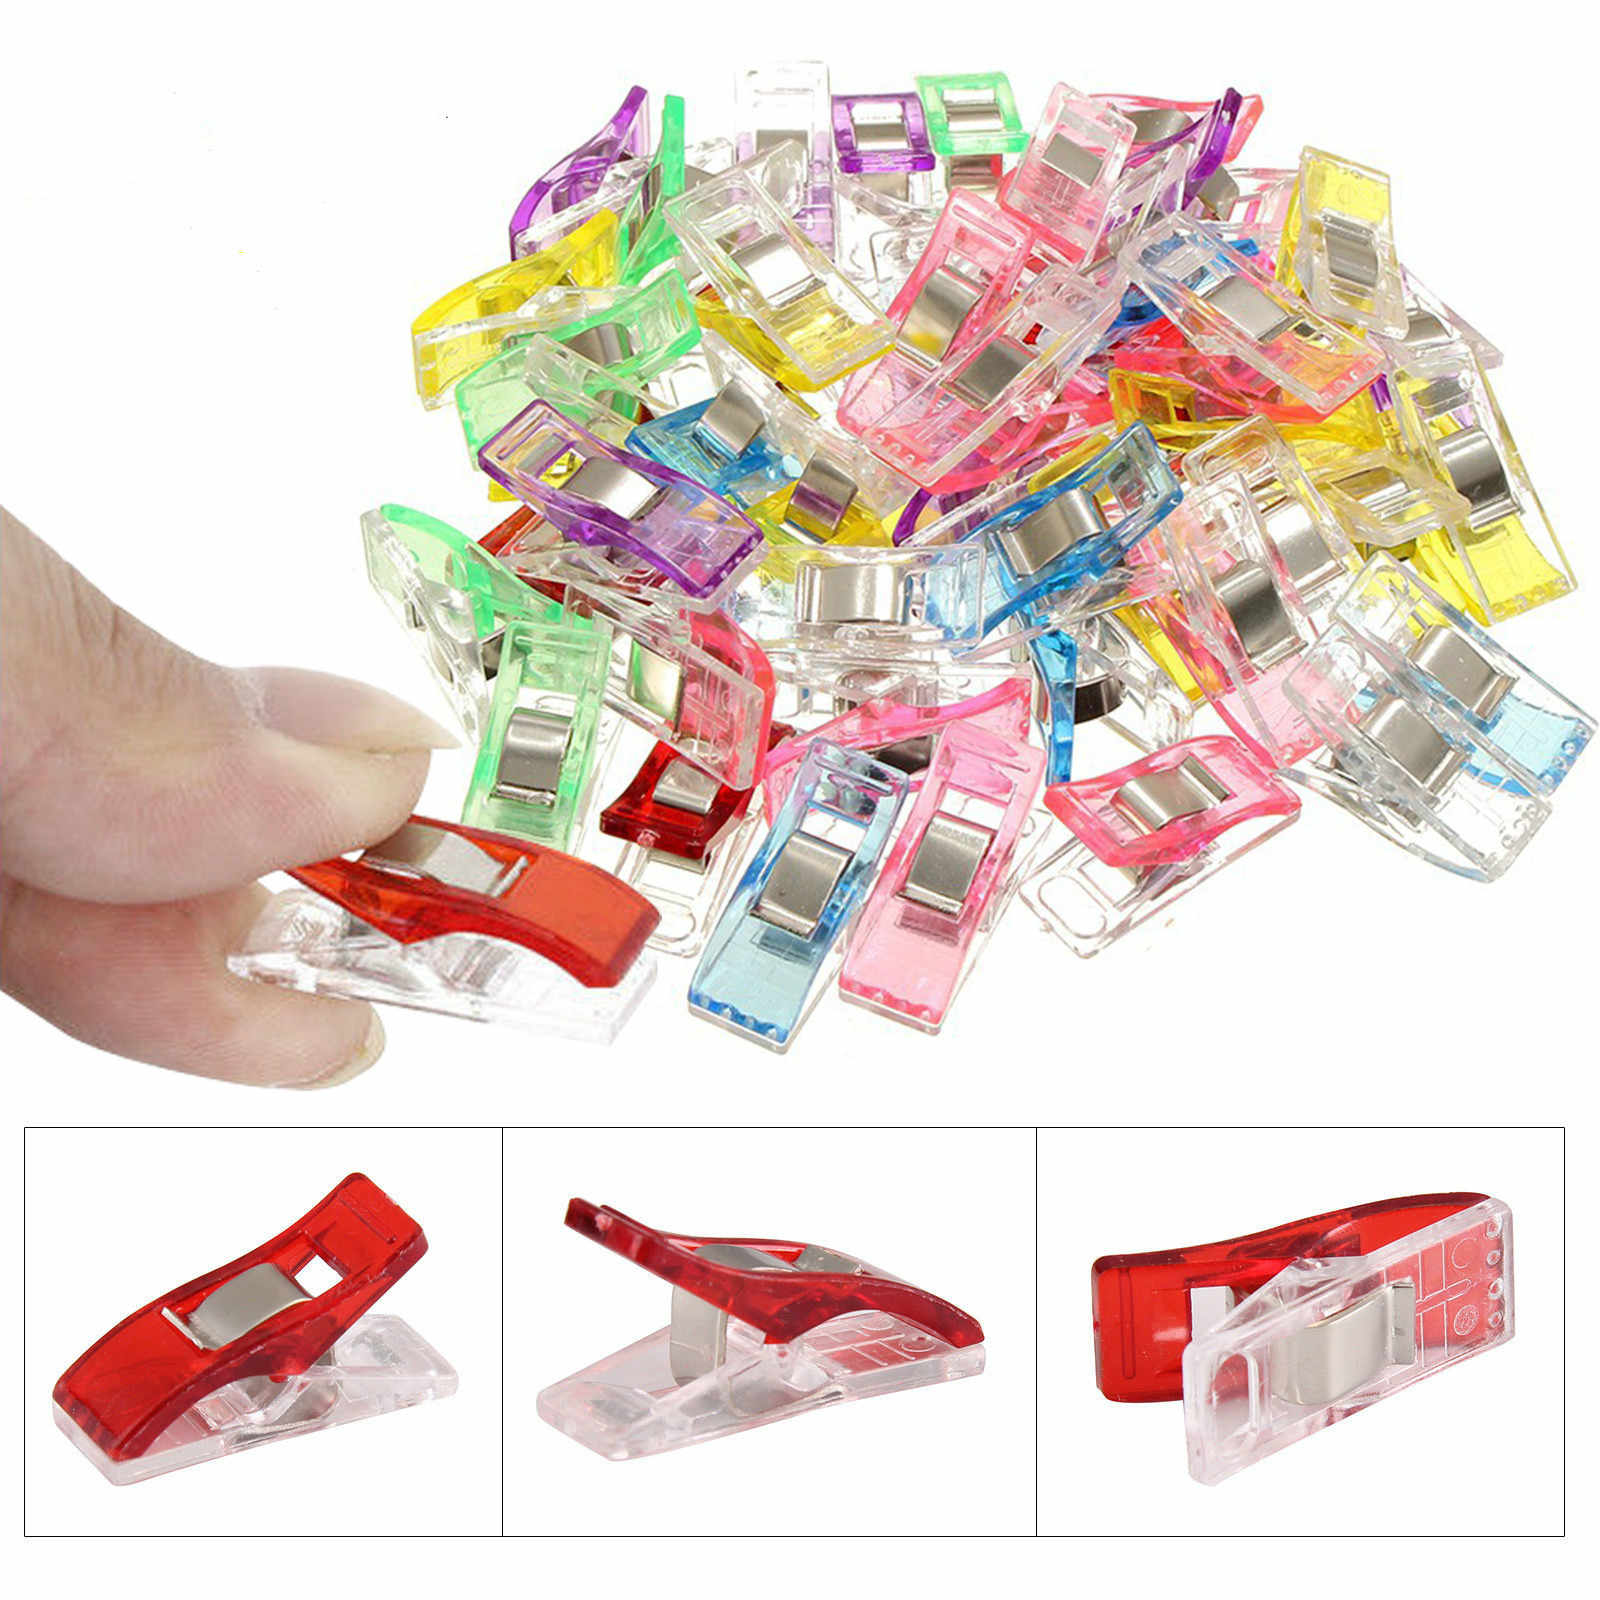 YOSIYO 50Pcs//set DIY Plastic Garment Clips Sewing Knitting Fabric Clothing Clip Quilting Patchwork Binding Clamps Random Color